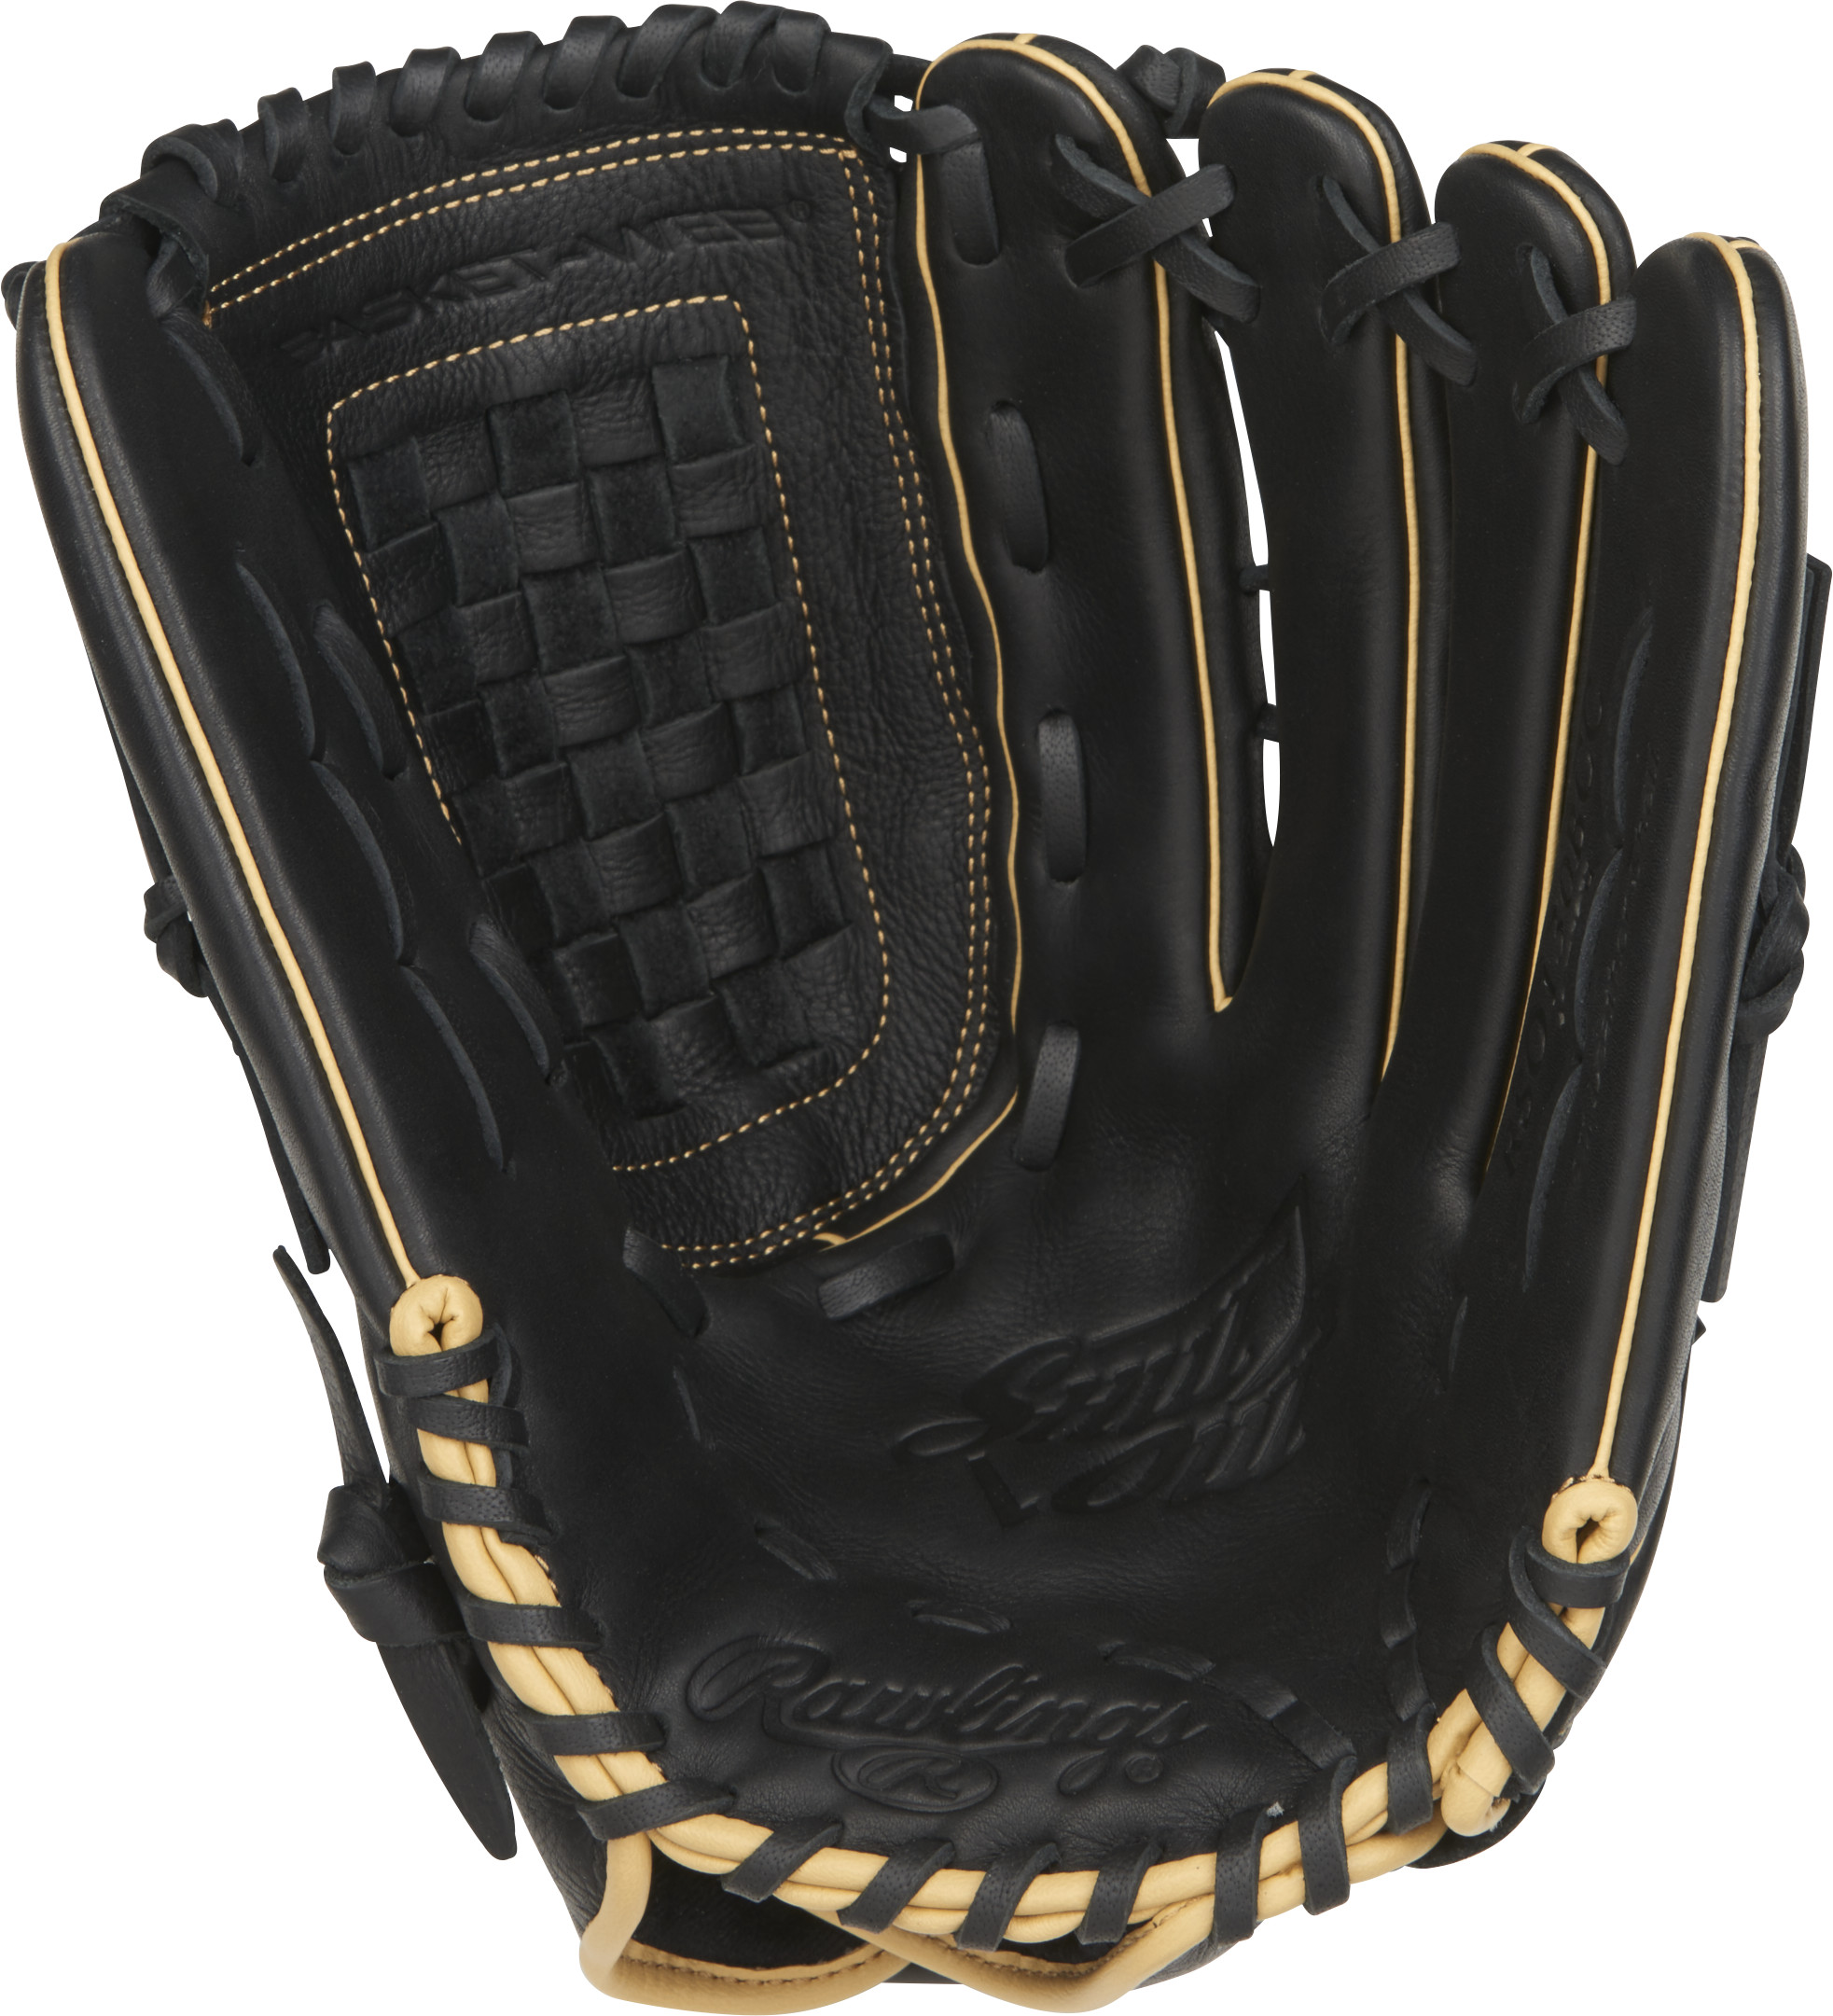 http://www.bestbatdeals.com/images/gloves/rawlings/RSO130BCC-1.jpg